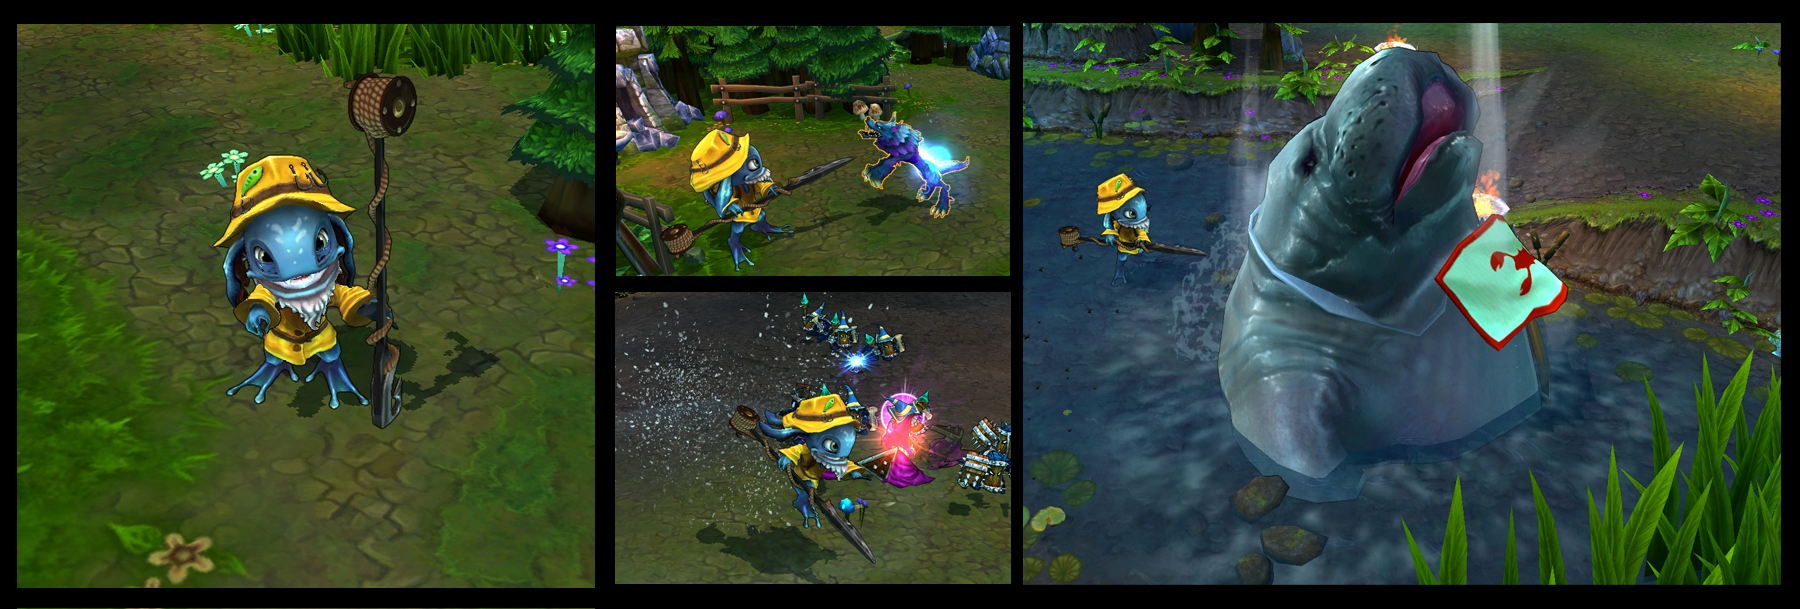 Fisherman Fizz - Skin for SALE! - Get it NOW